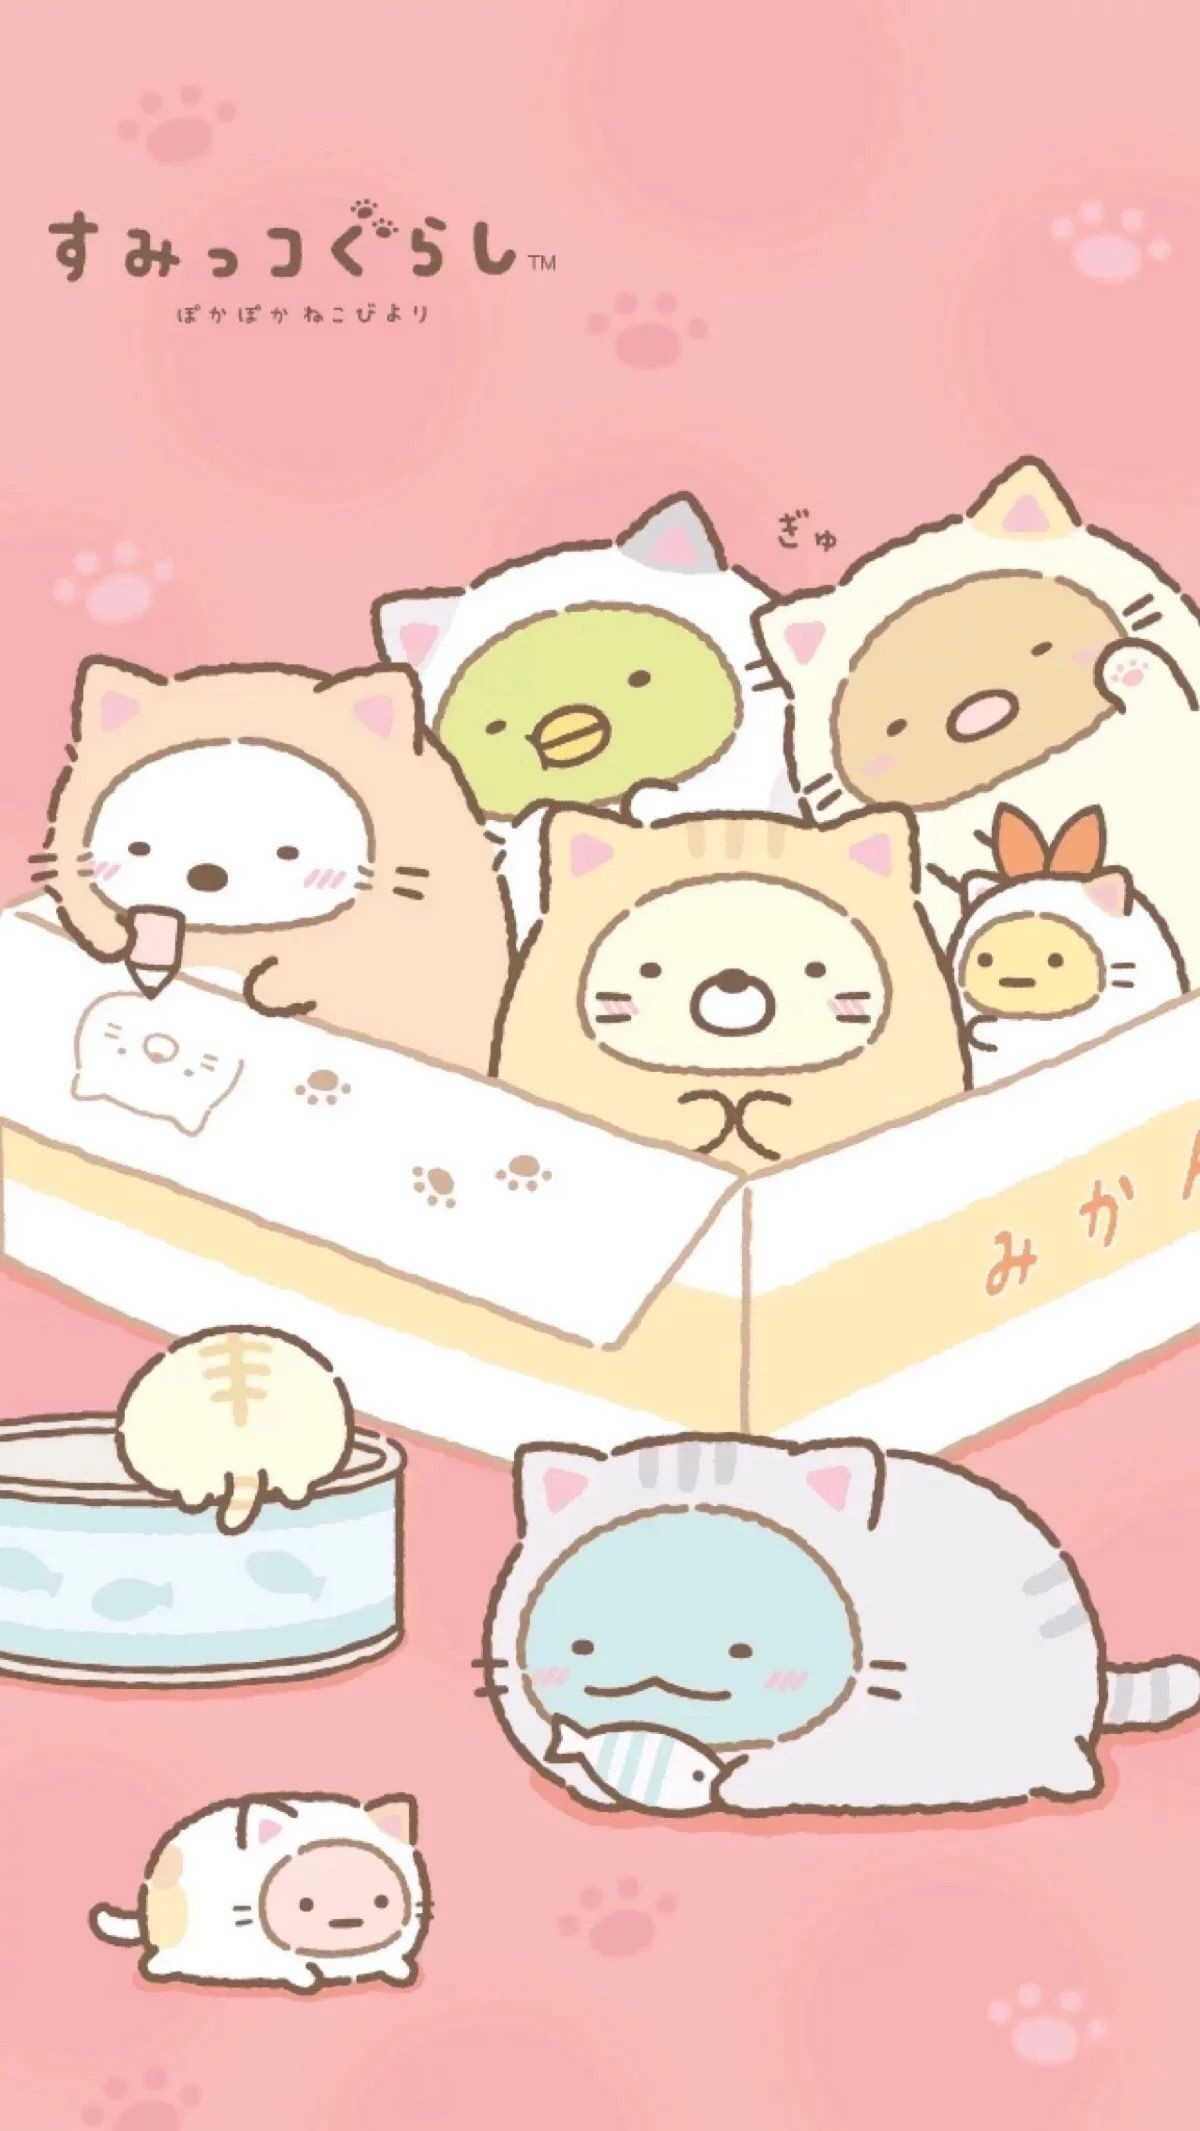 Res: 1200x2131, Pin by Pankeawป่านแก้ว on Wallpaper sanrio | Pinterest | Kawaii, Wallpaper  and Molang